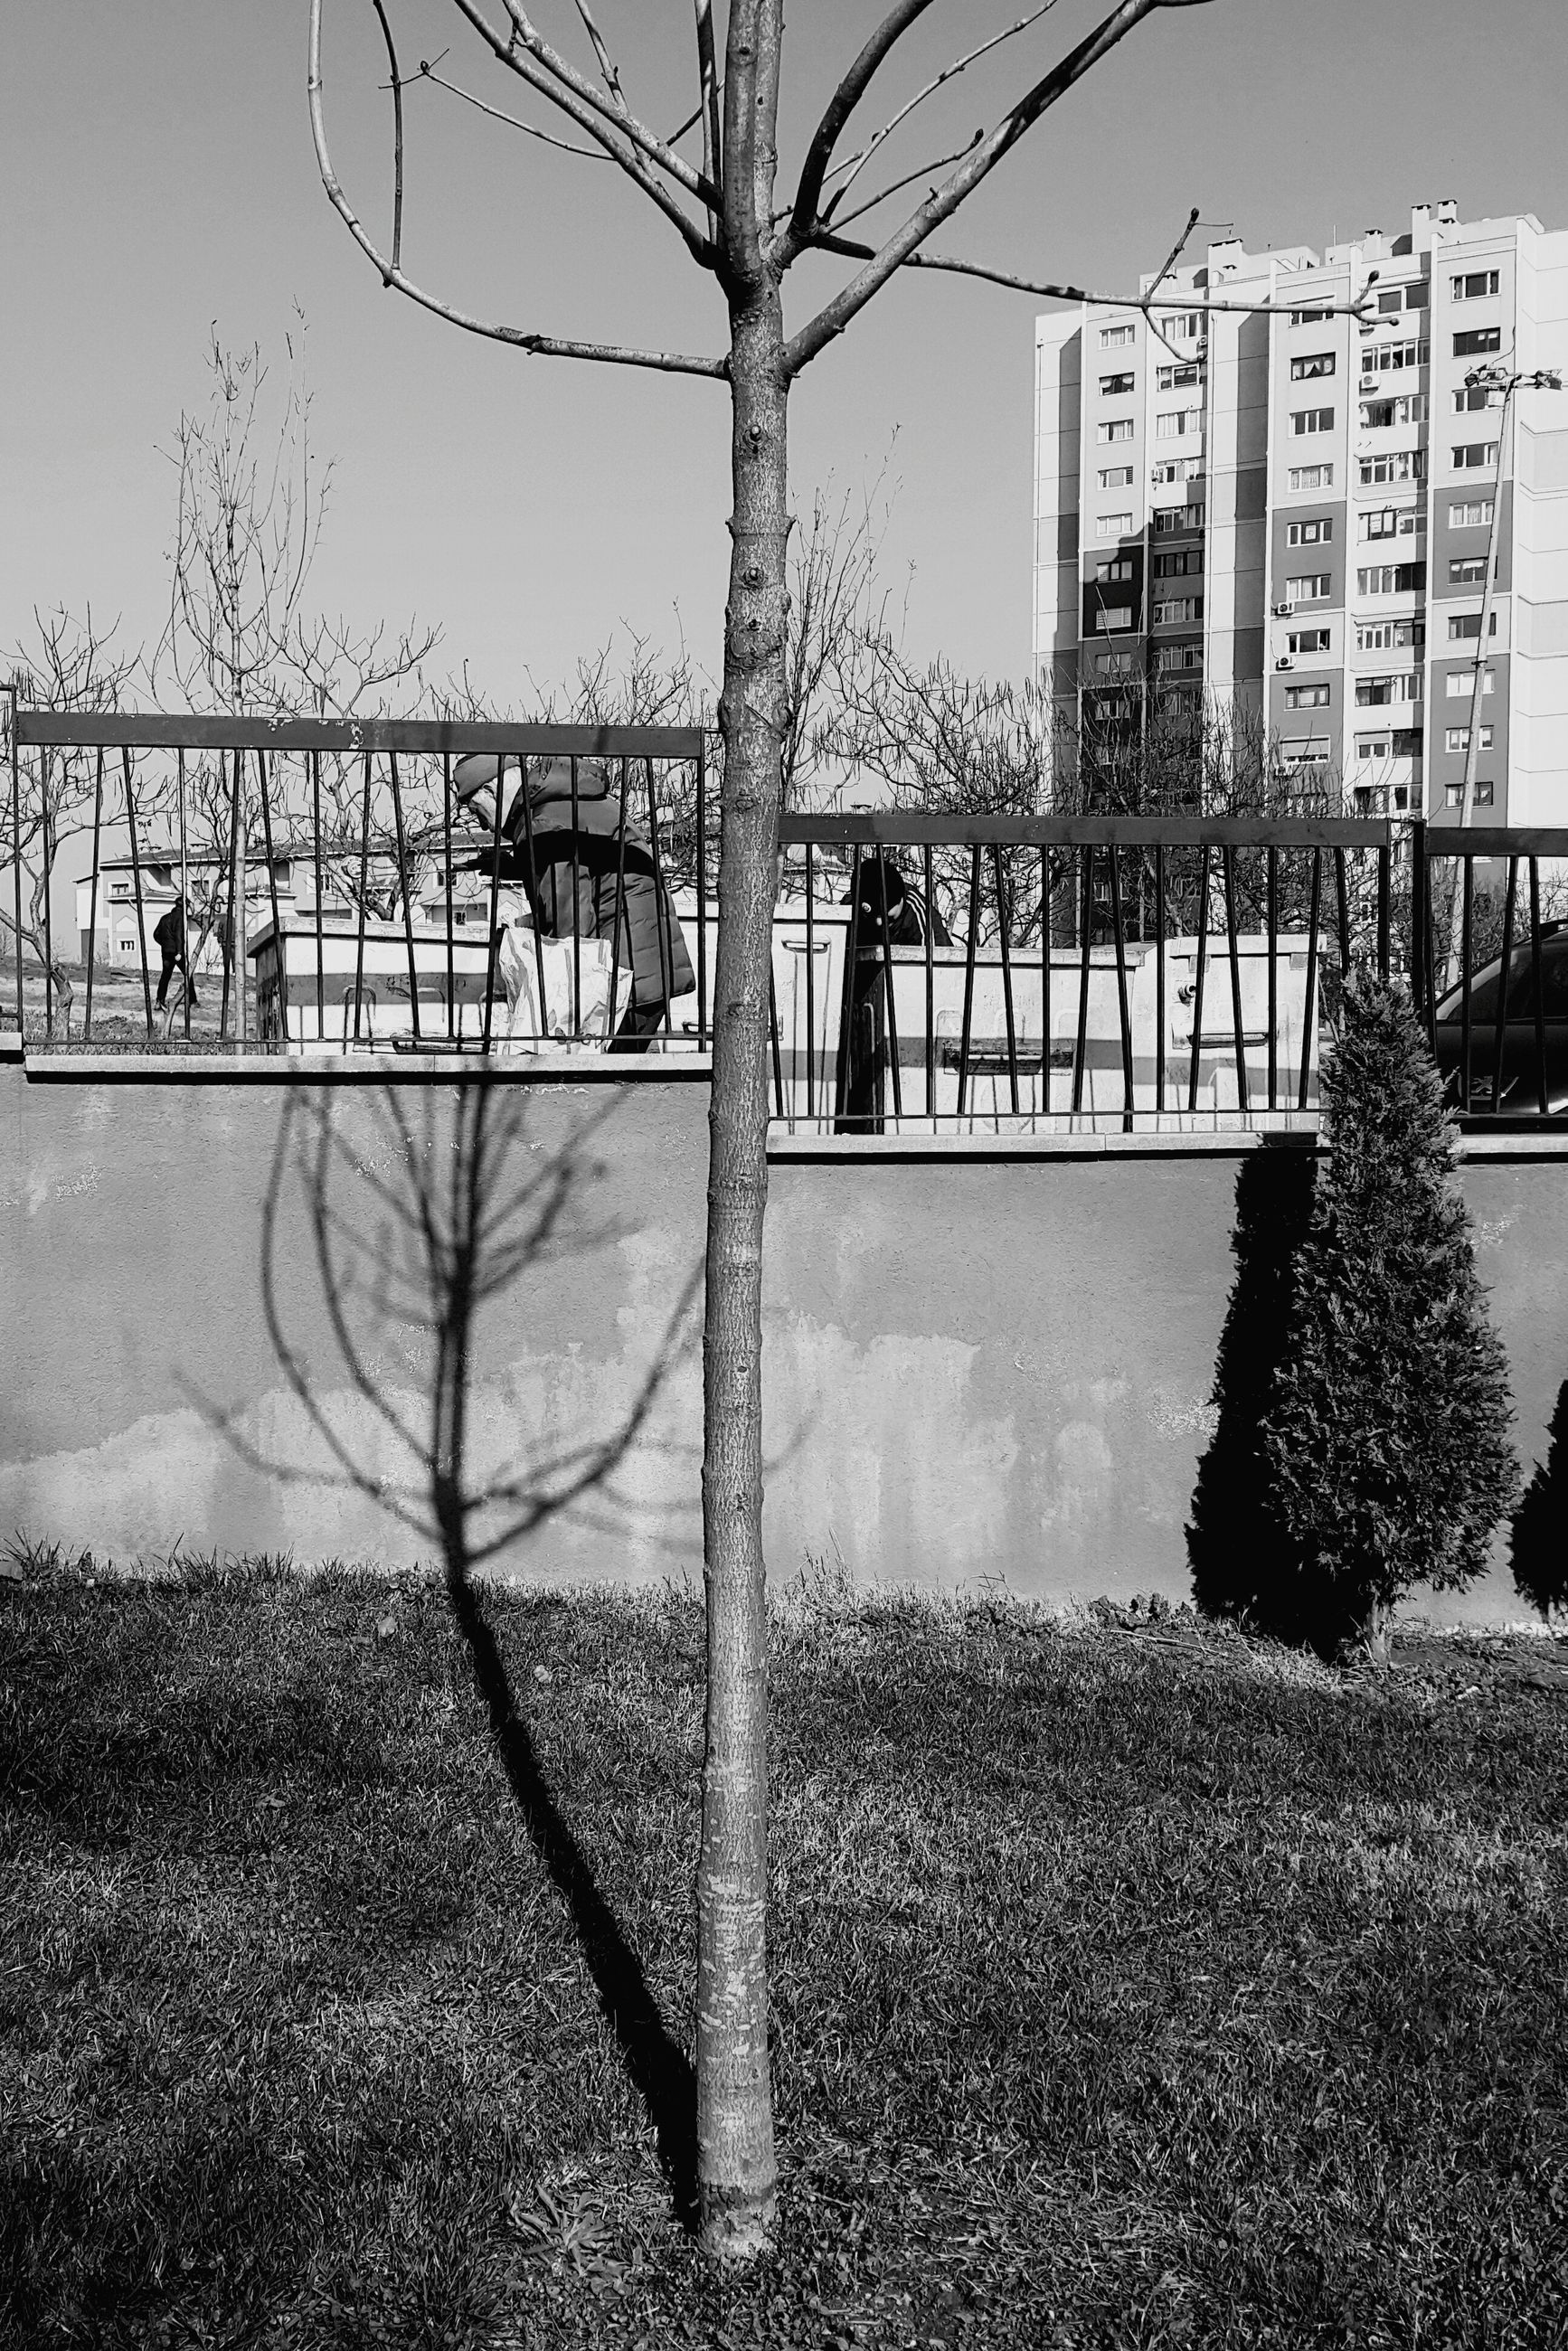 built structure, building exterior, architecture, tree, plant, nature, no people, day, sky, fence, outdoors, barrier, water, boundary, city, transportation, building, grass, bare tree